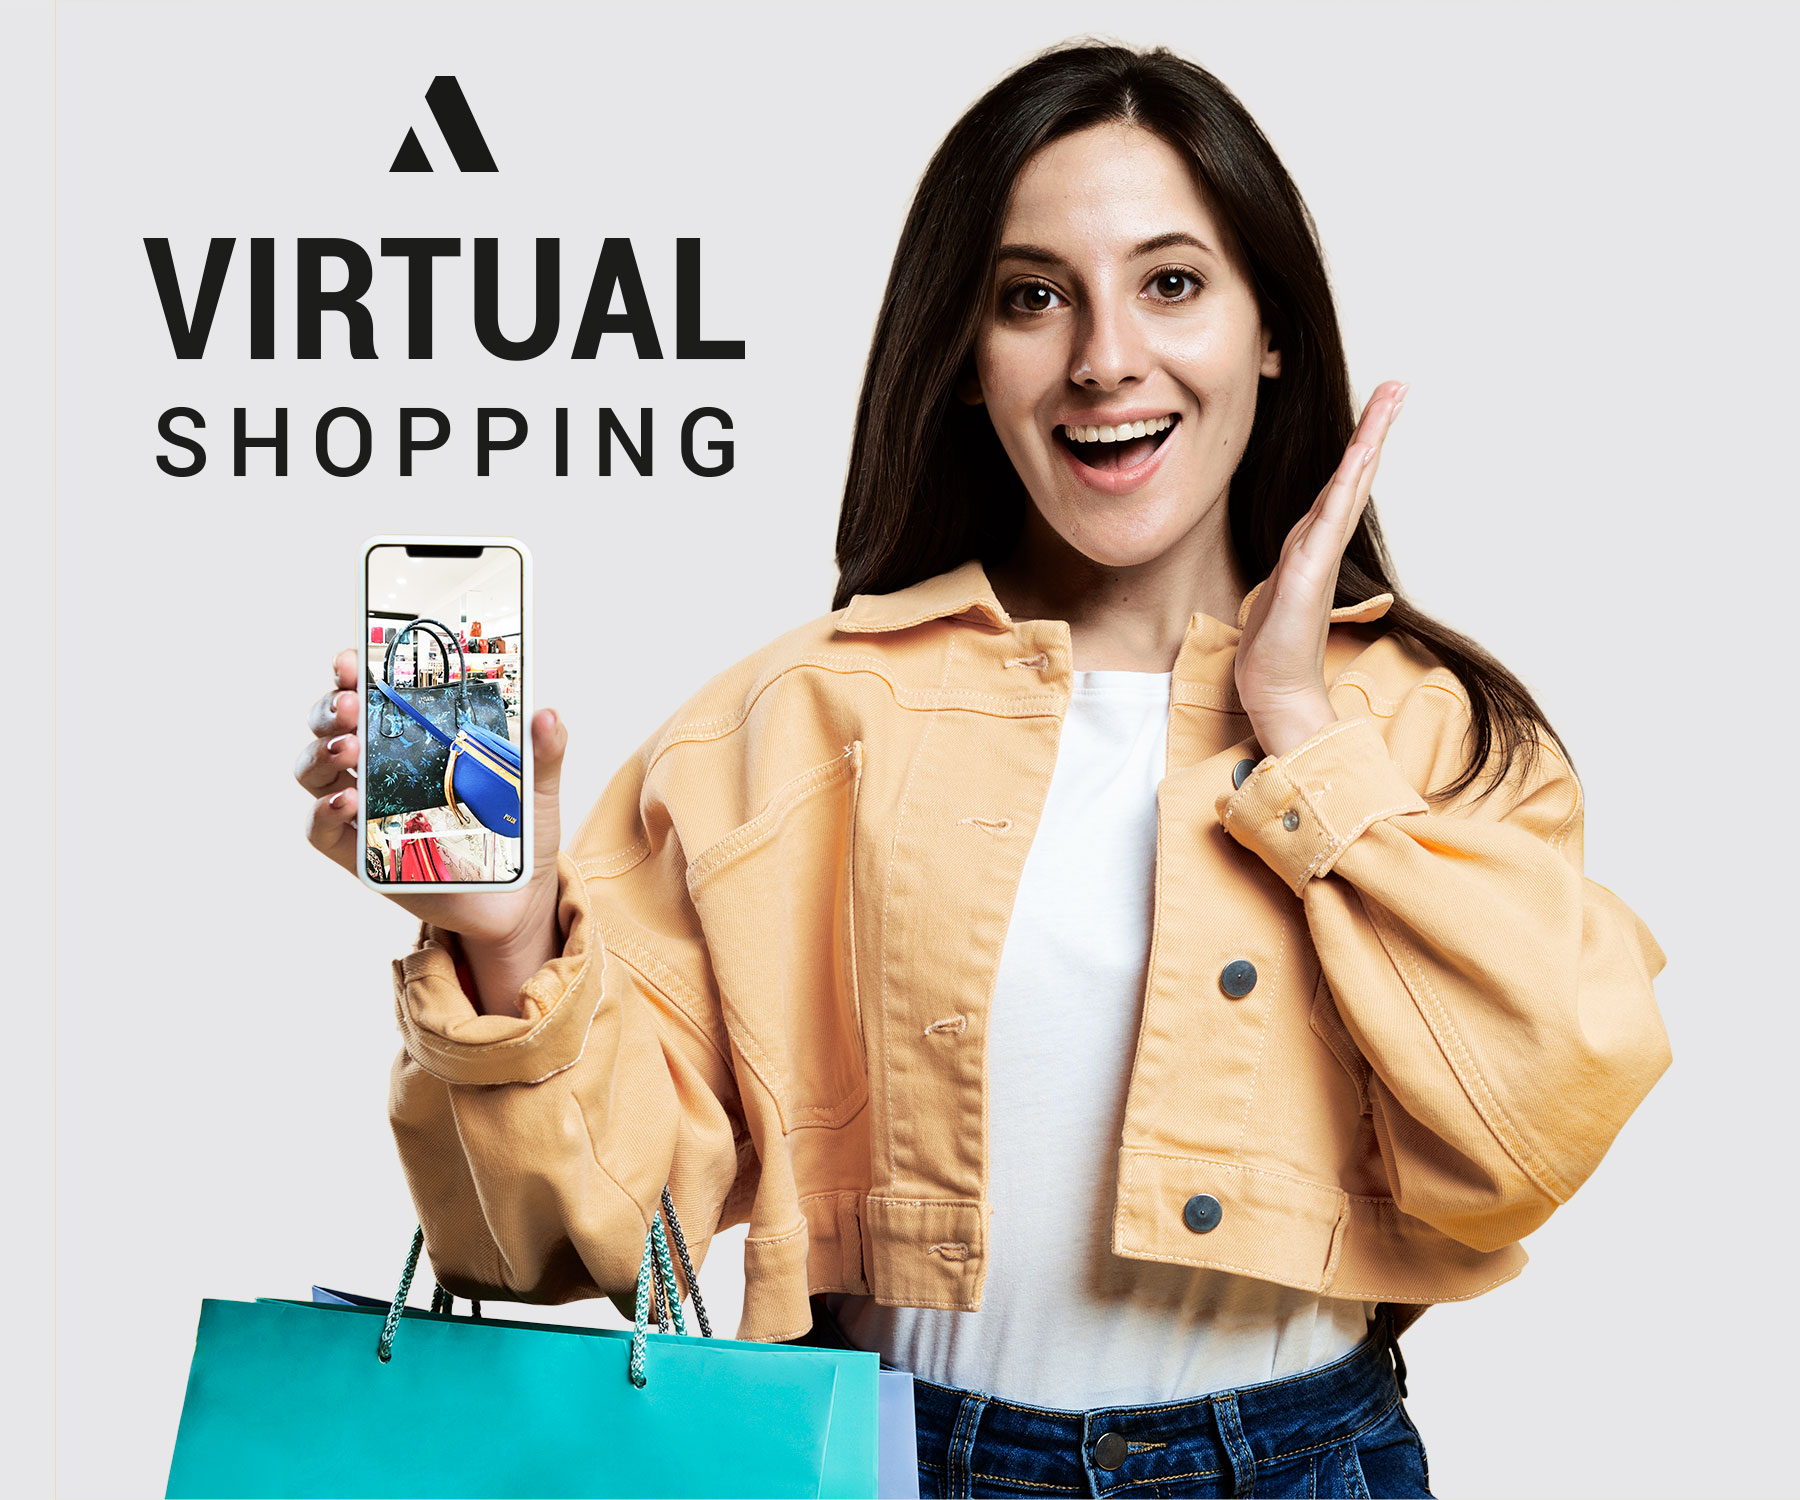 adrimar firenze, virtual shopping, live shopping, personal shopping assistant